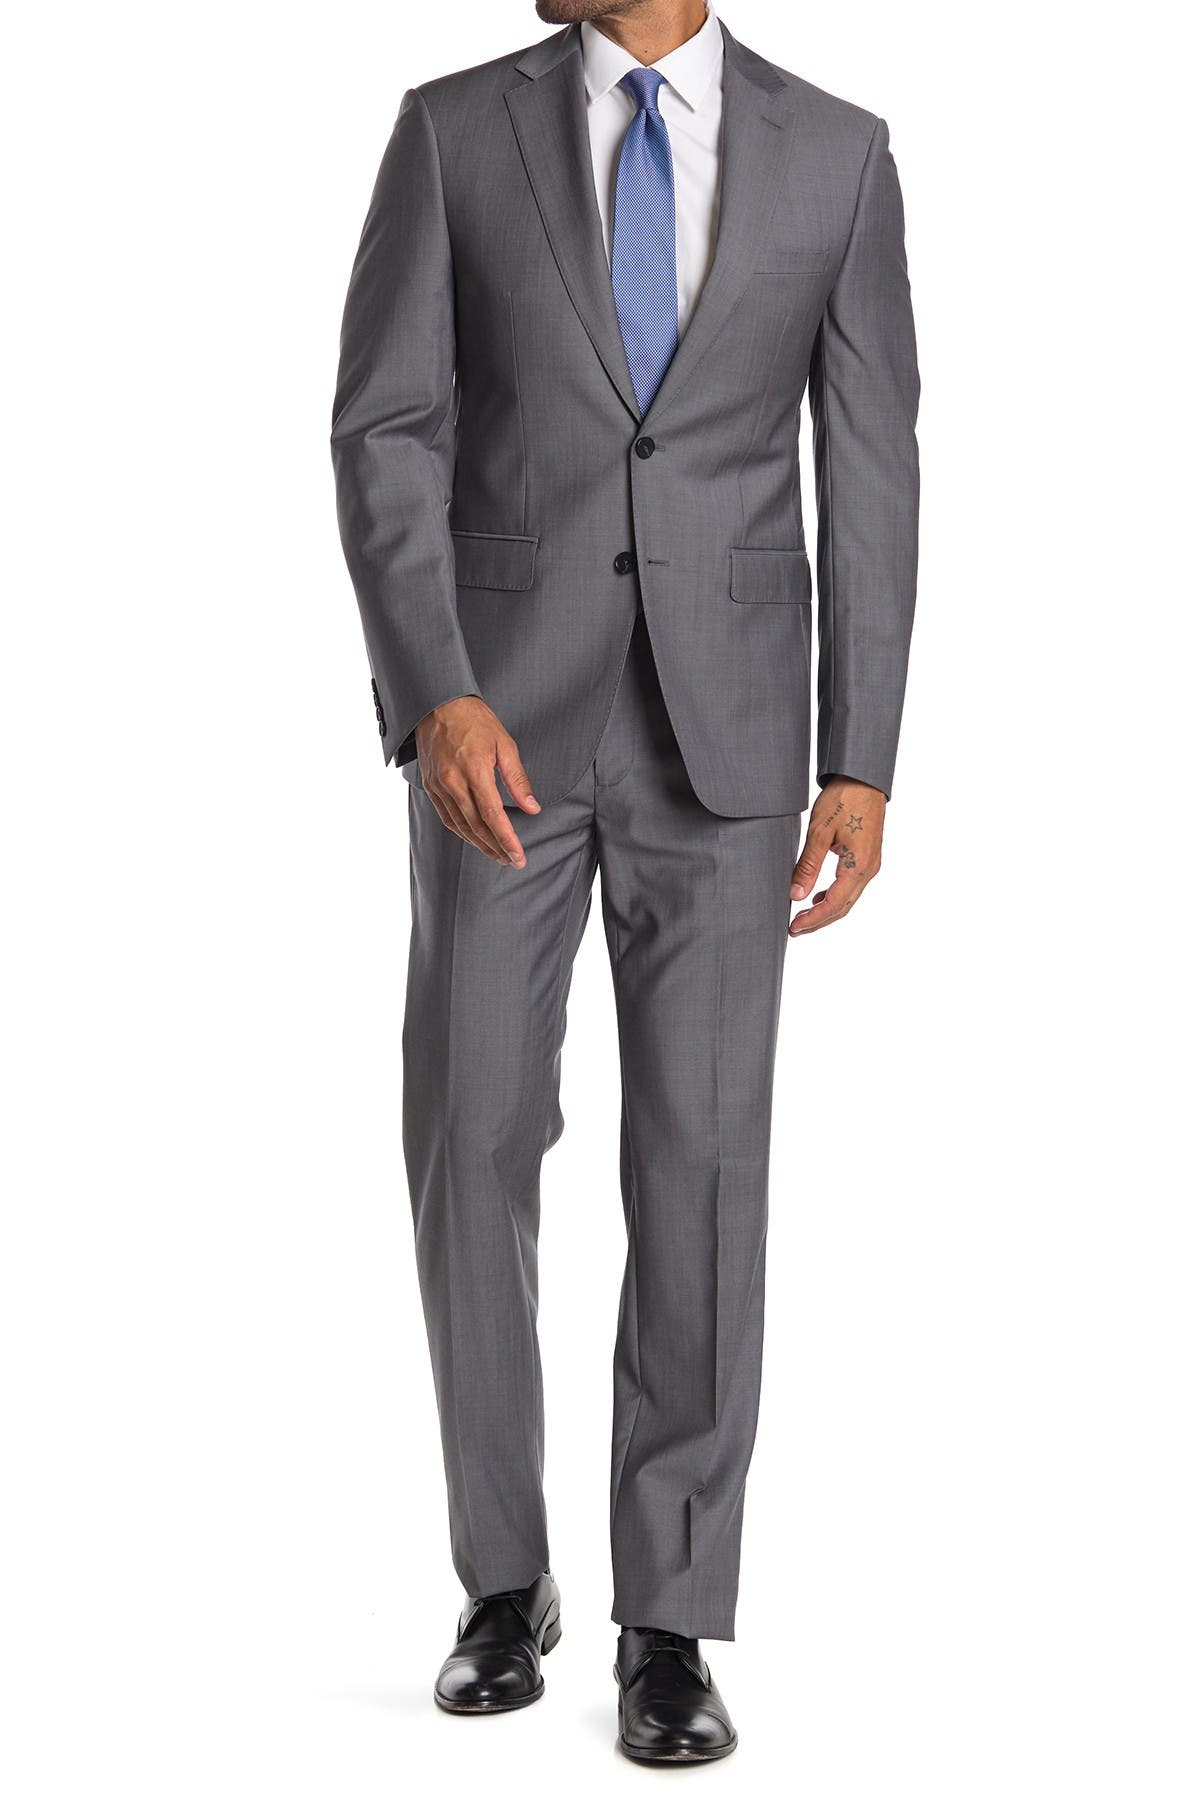 Image of Calvin Klein Dark Grey Shark Skin Wool Two Button Notch Lapel Suit